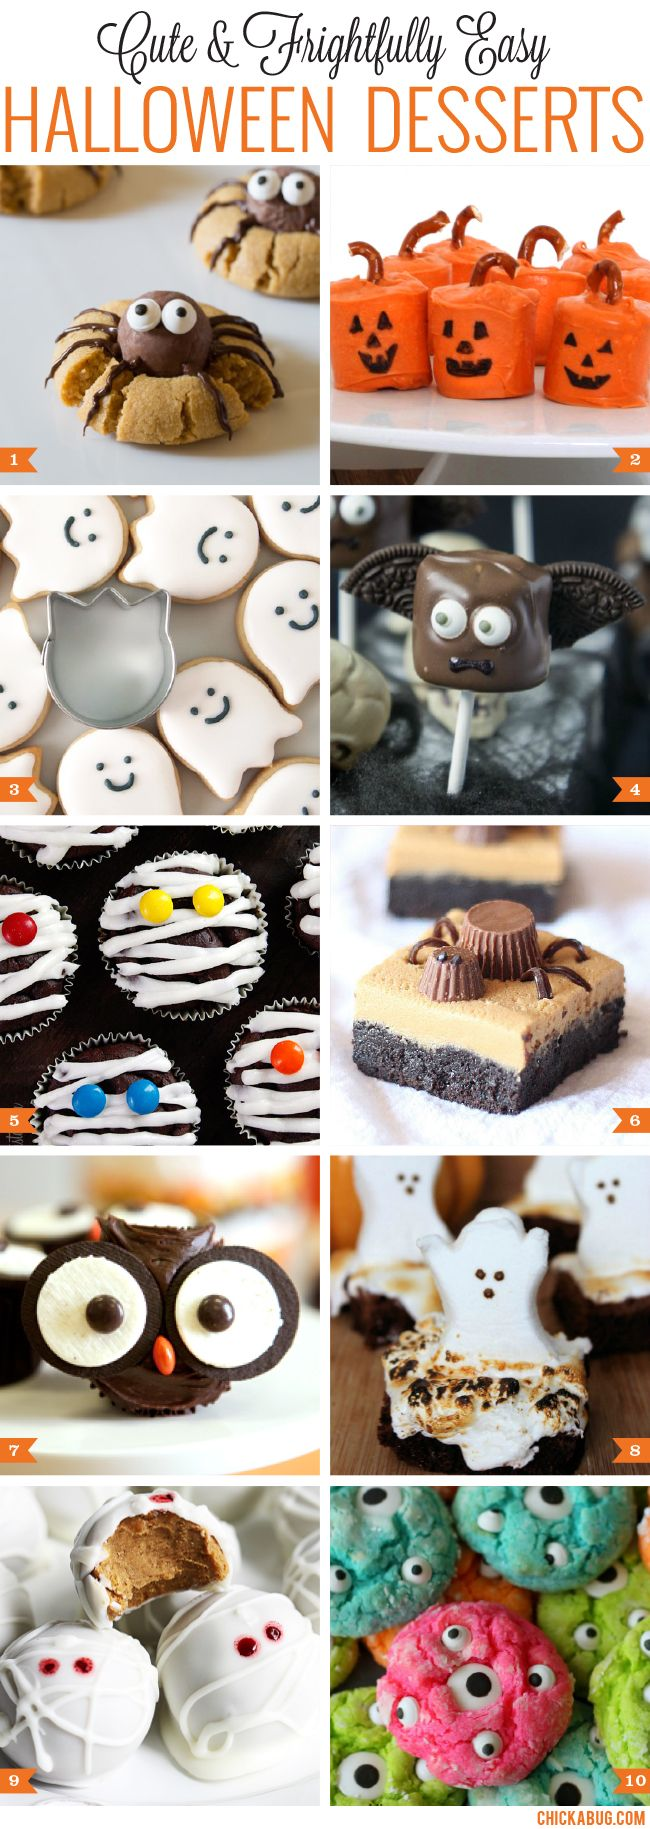 Cute and EASY Halloween desserts